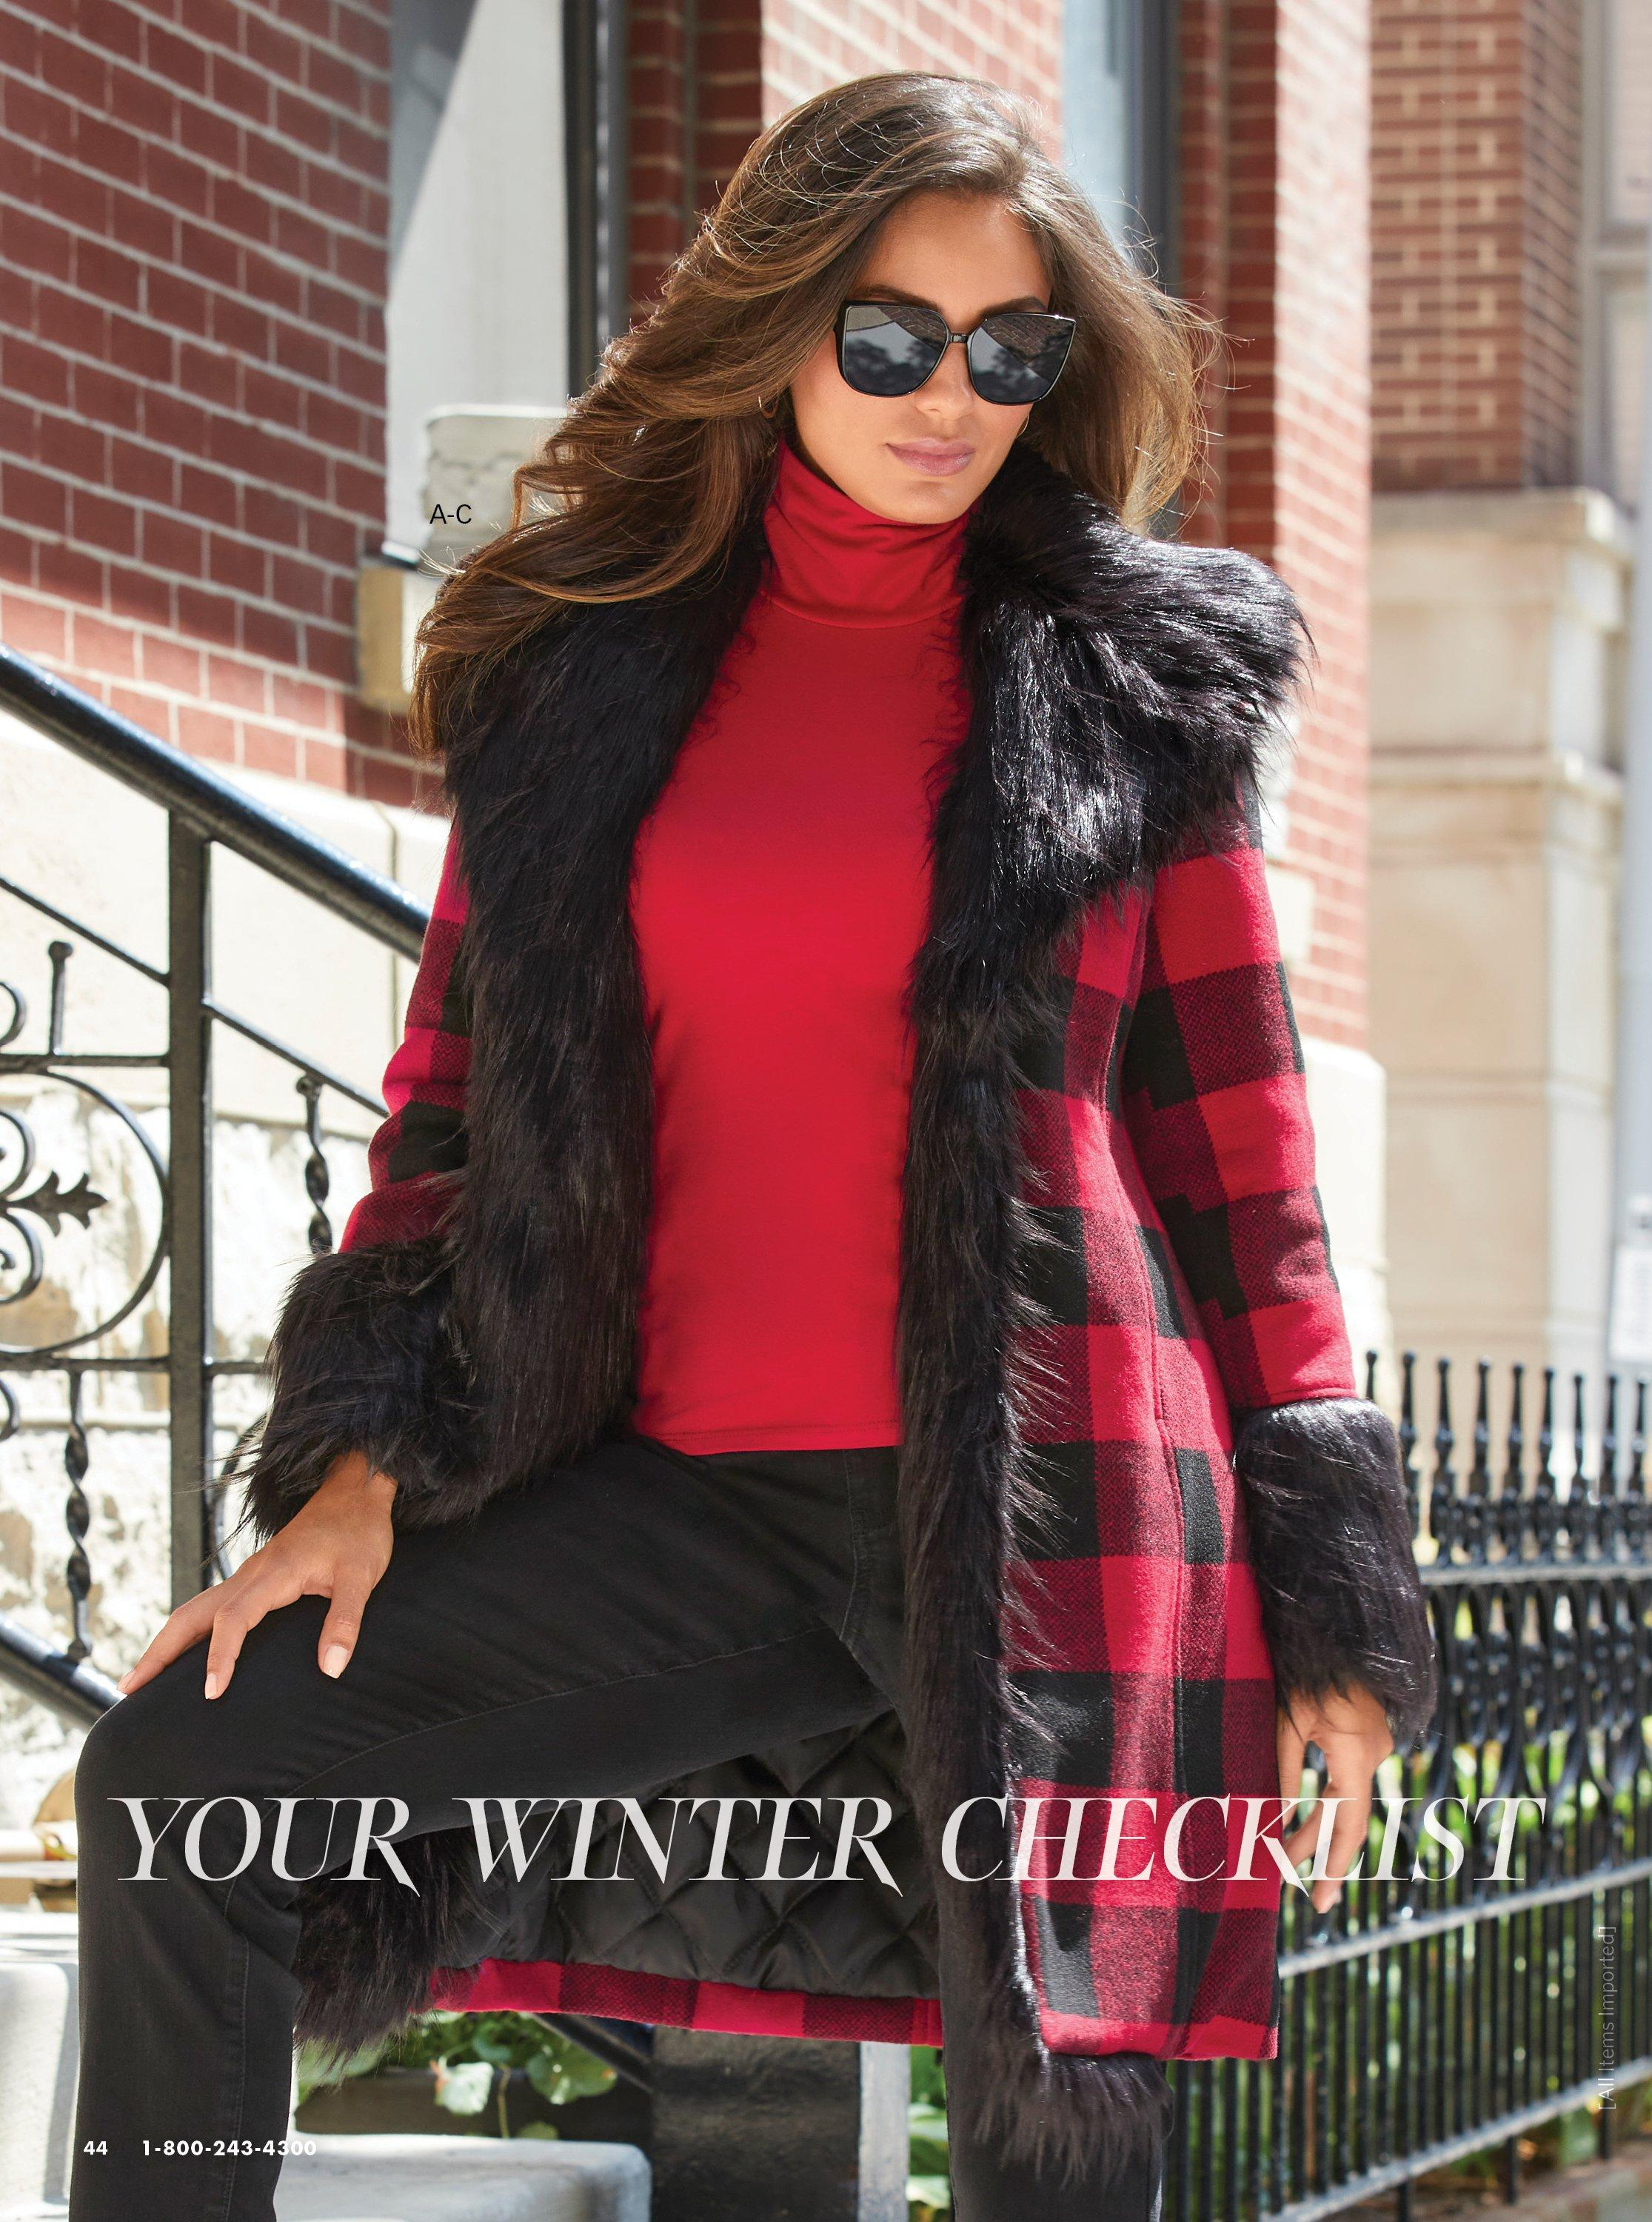 model wearing a red and black faux fur lined plaid jacket, red turtleneck top, and jeans.